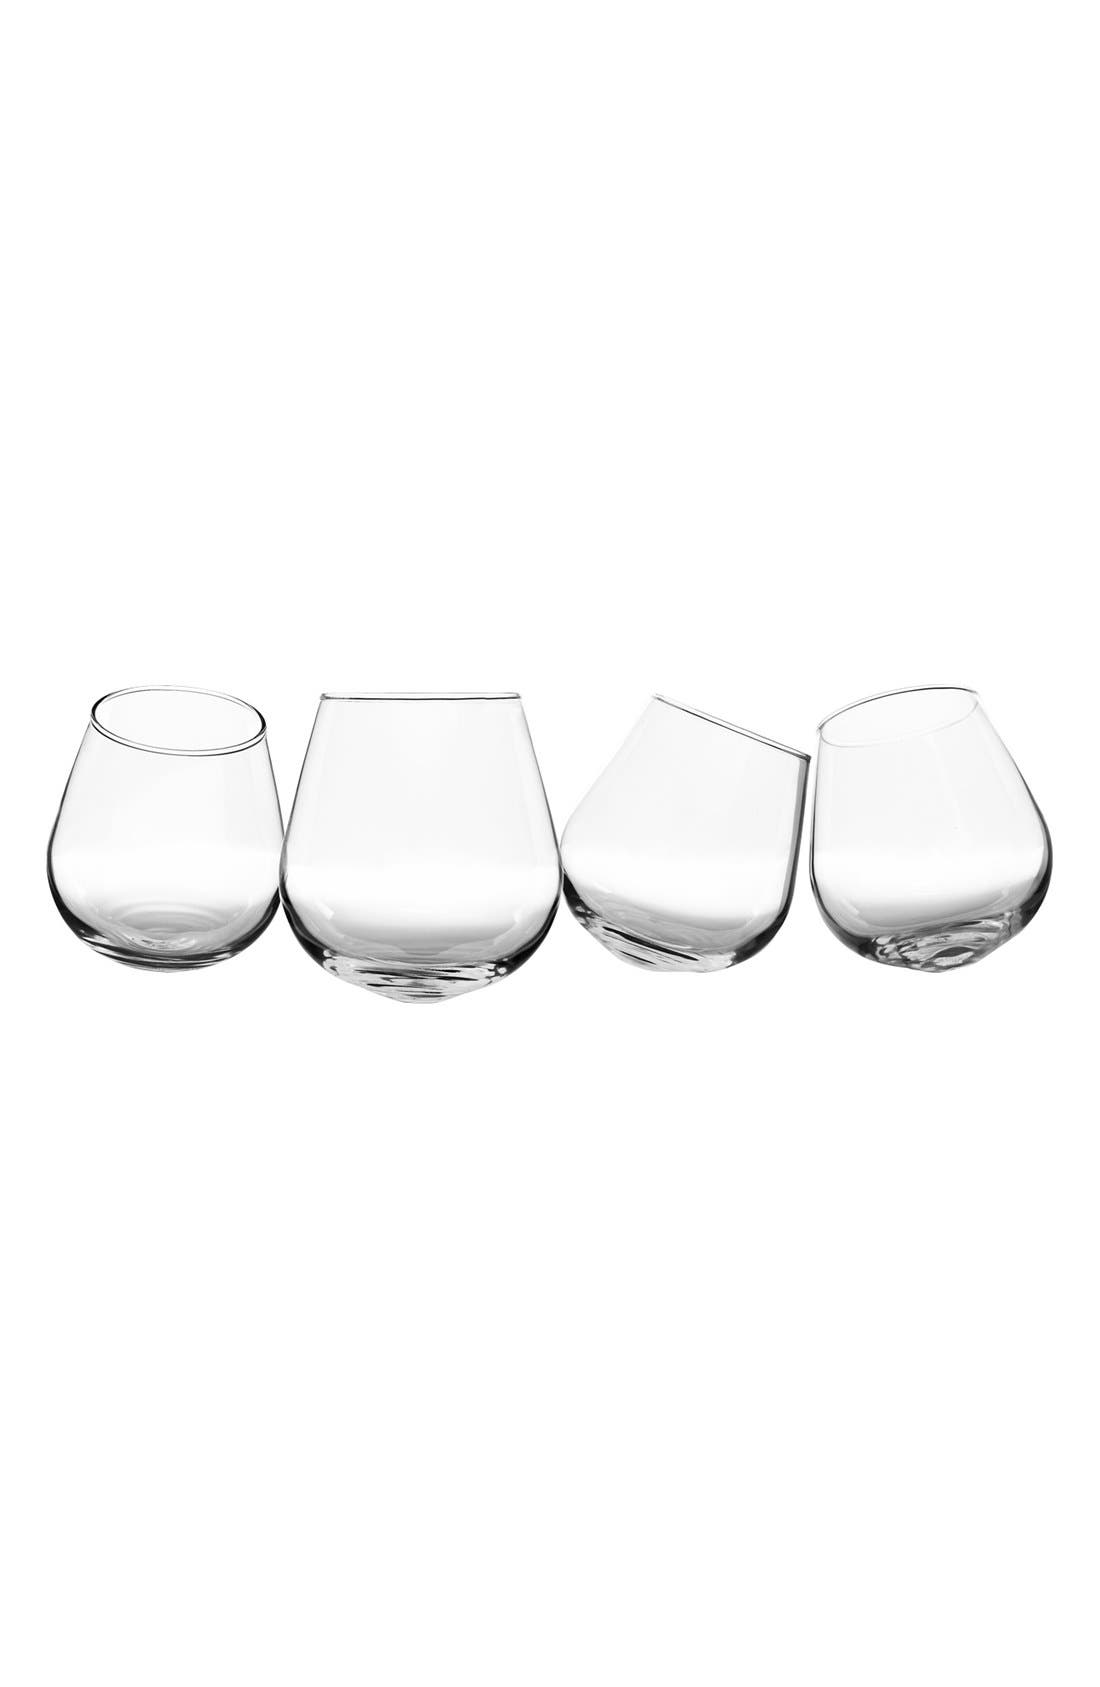 CATHY'S CONCEPTS, Monogram Tipsy Set of 4 Wine Glasses, Main thumbnail 1, color, CLEAR